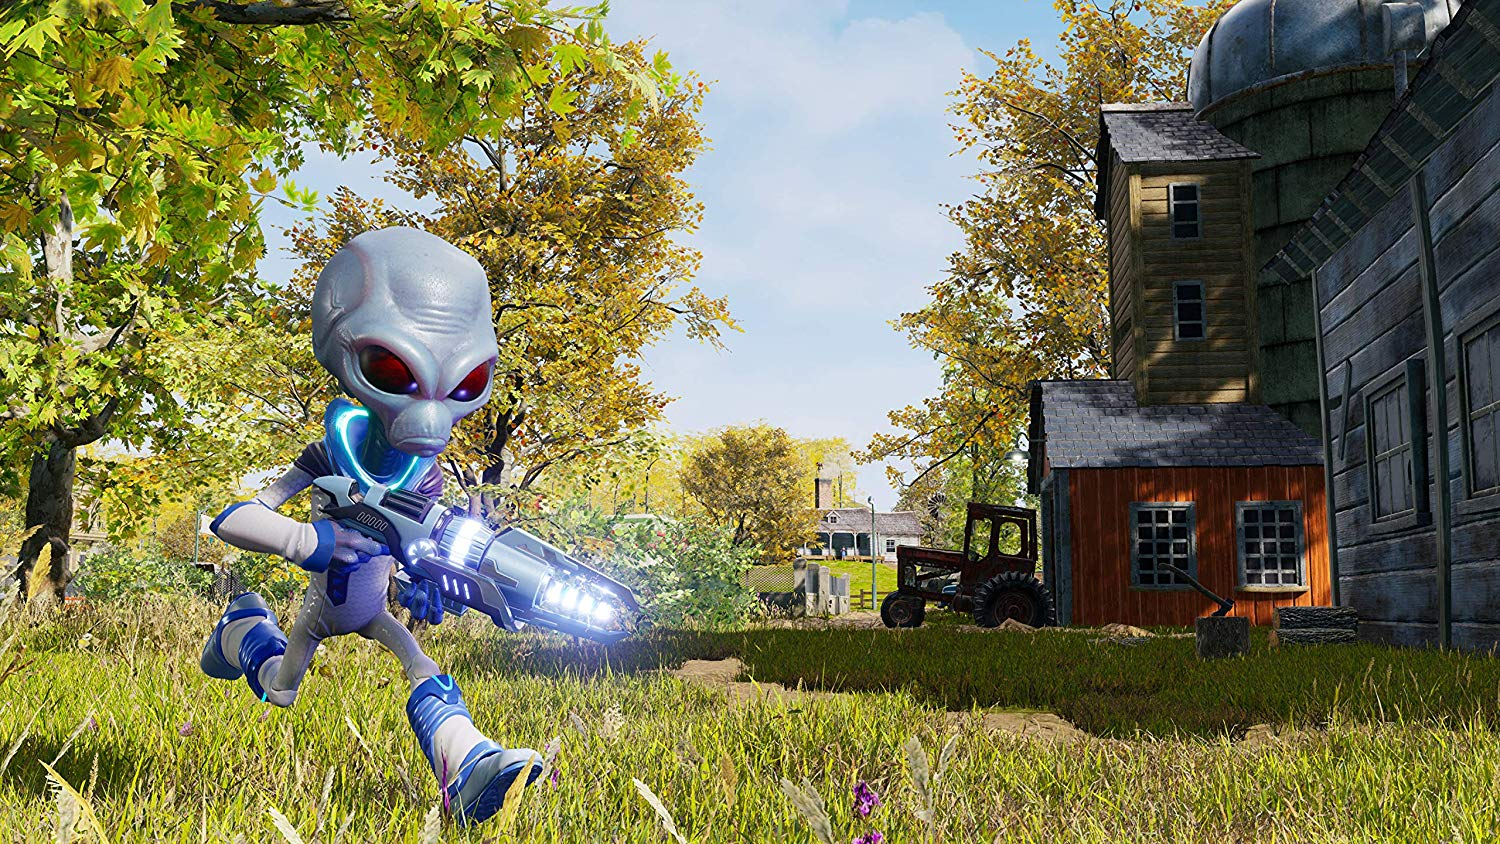 Destroy All Humans was leaked several times prior to its official E3 2019 reveal.